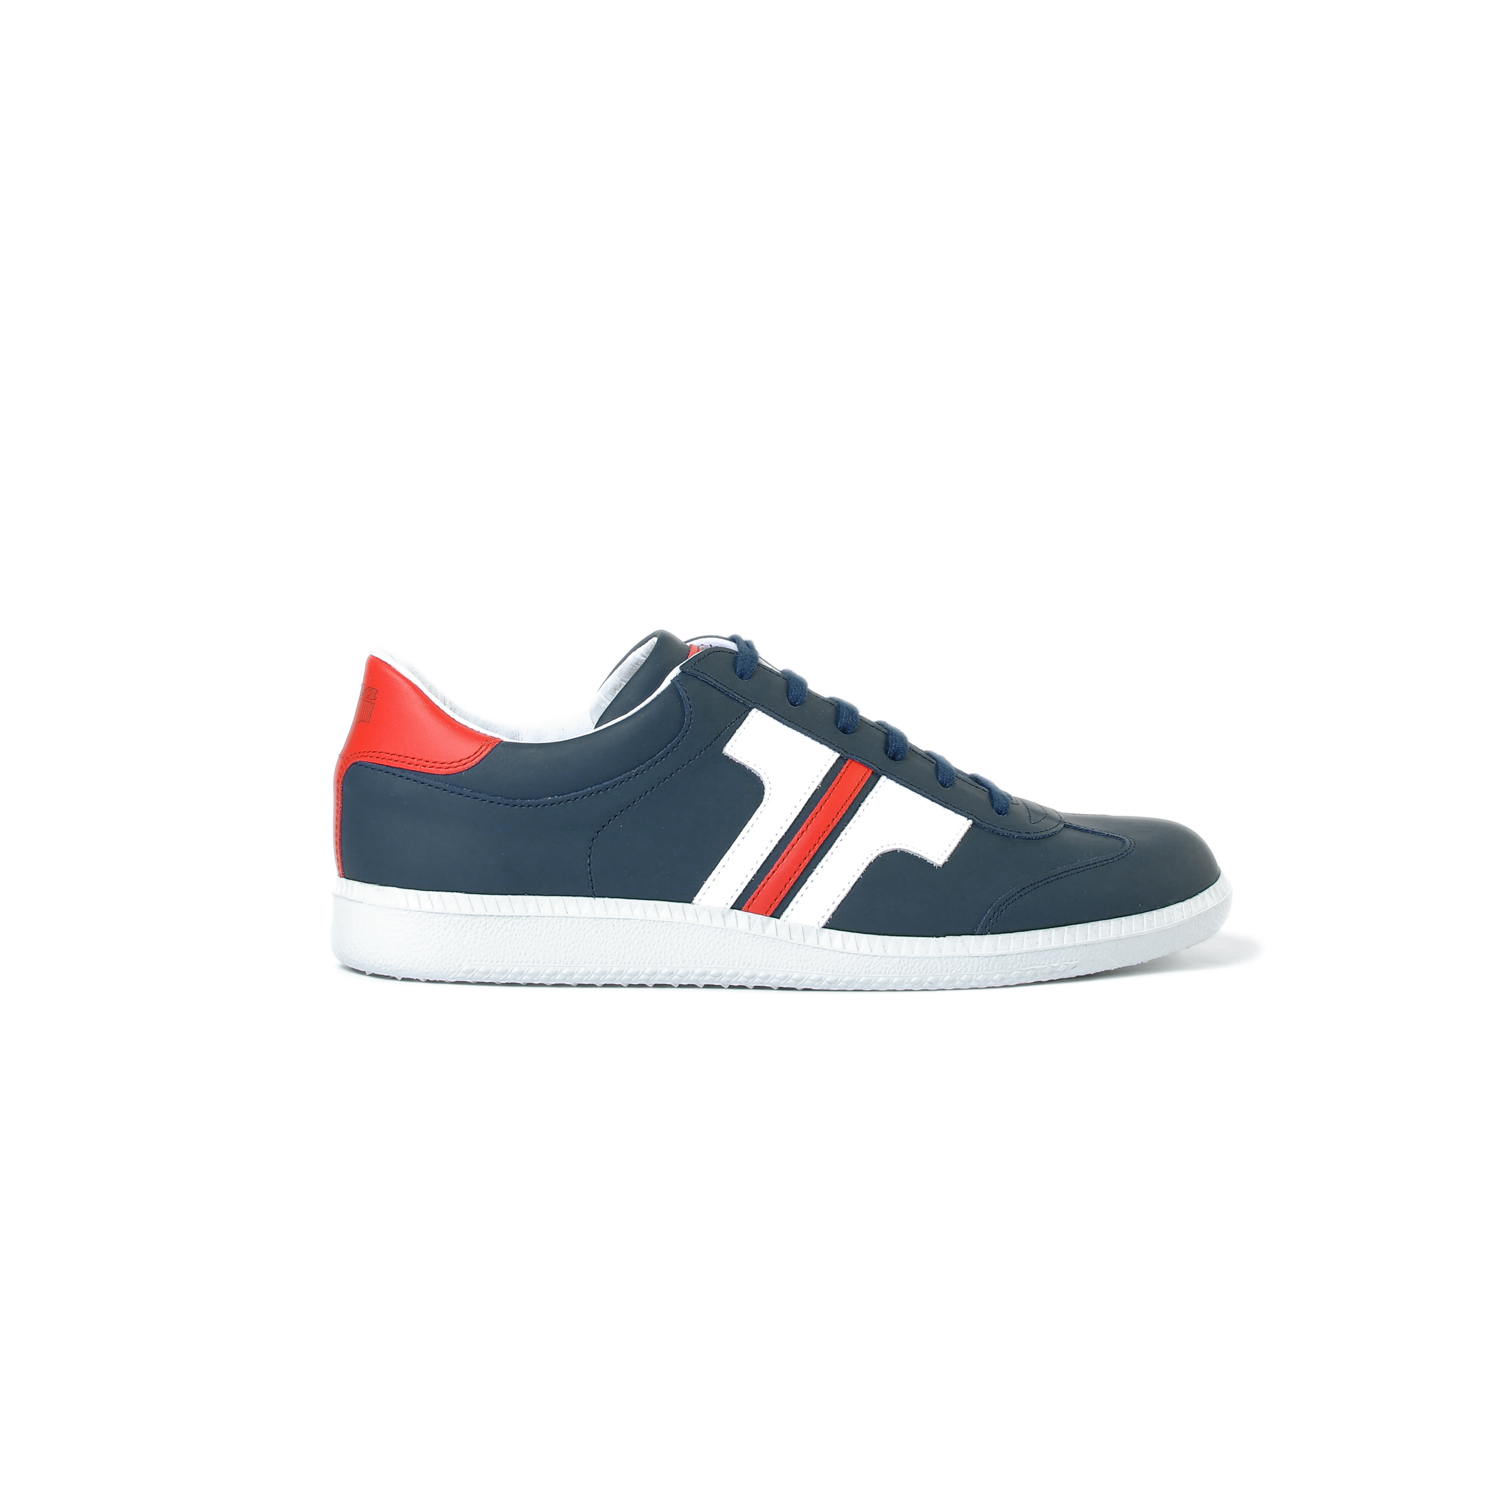 Tisza shoes - Compakt - Navy-white-red